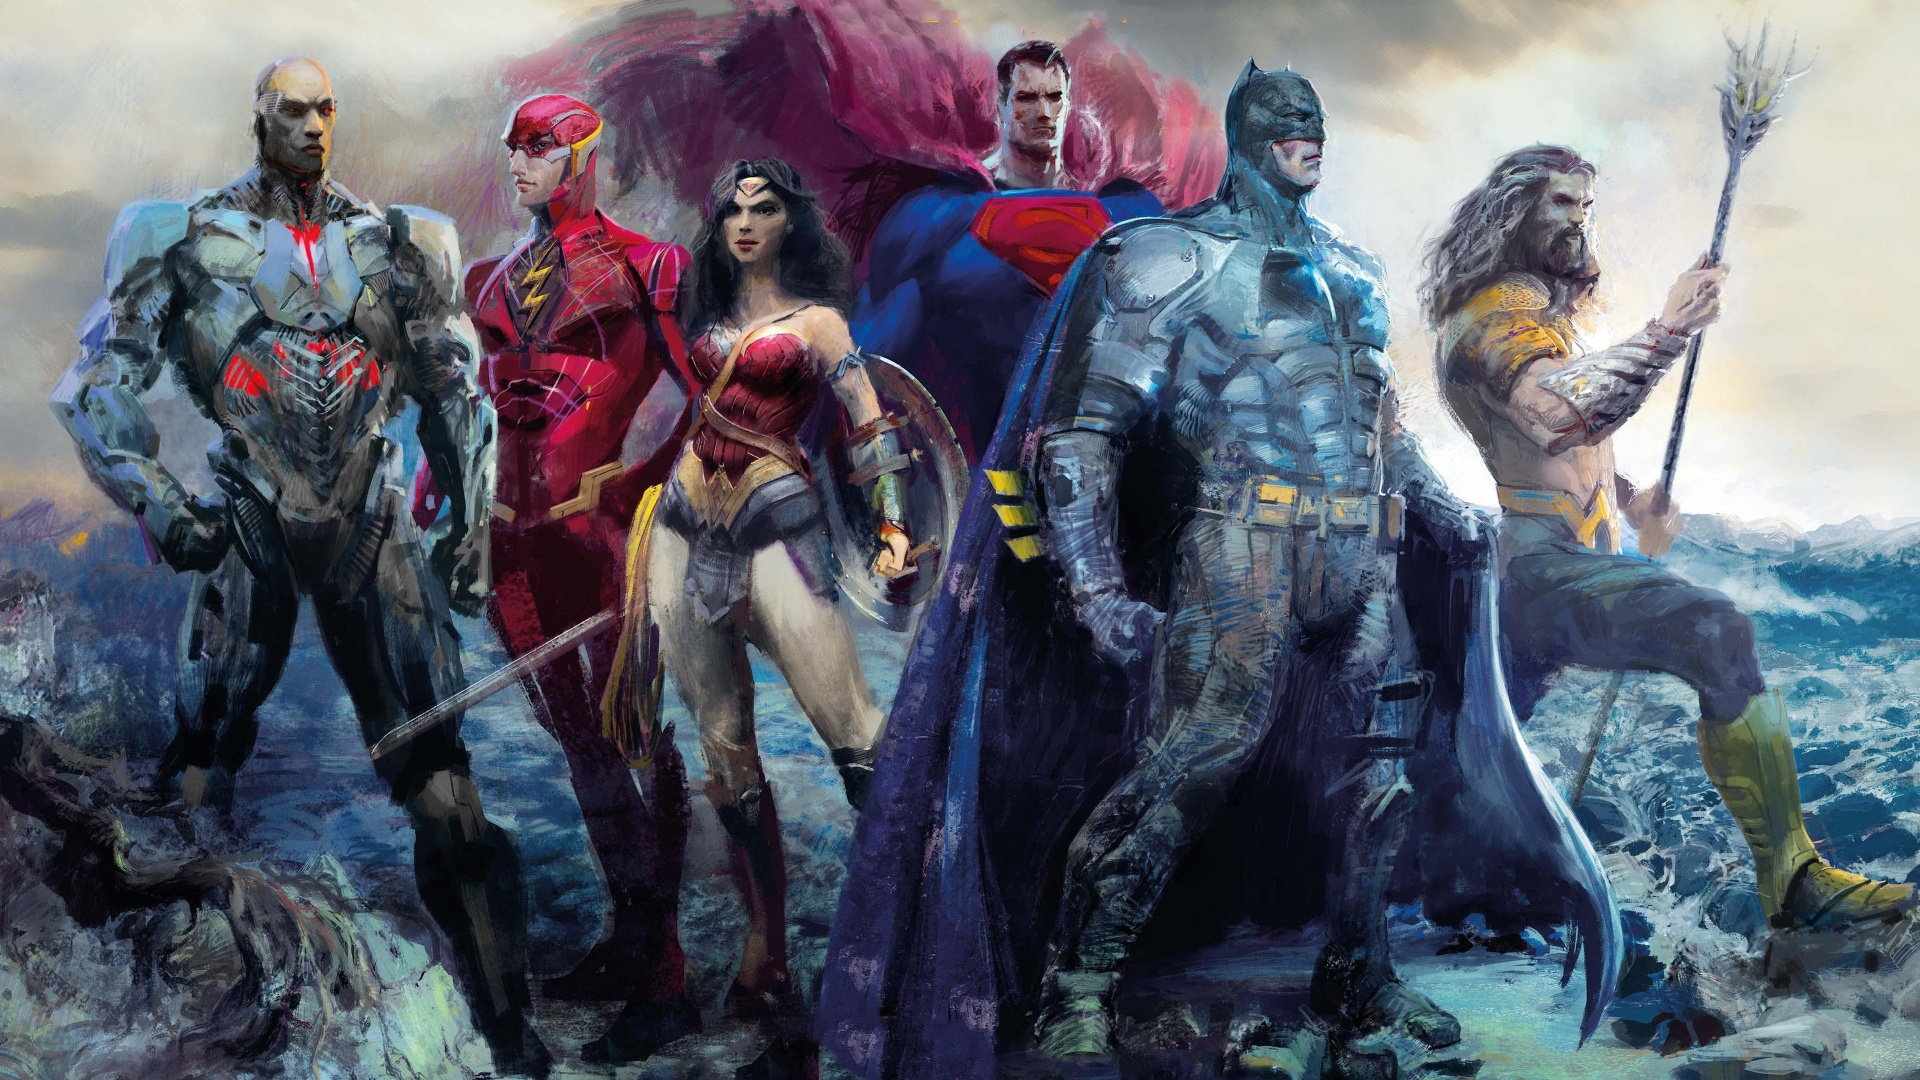 images of justice league